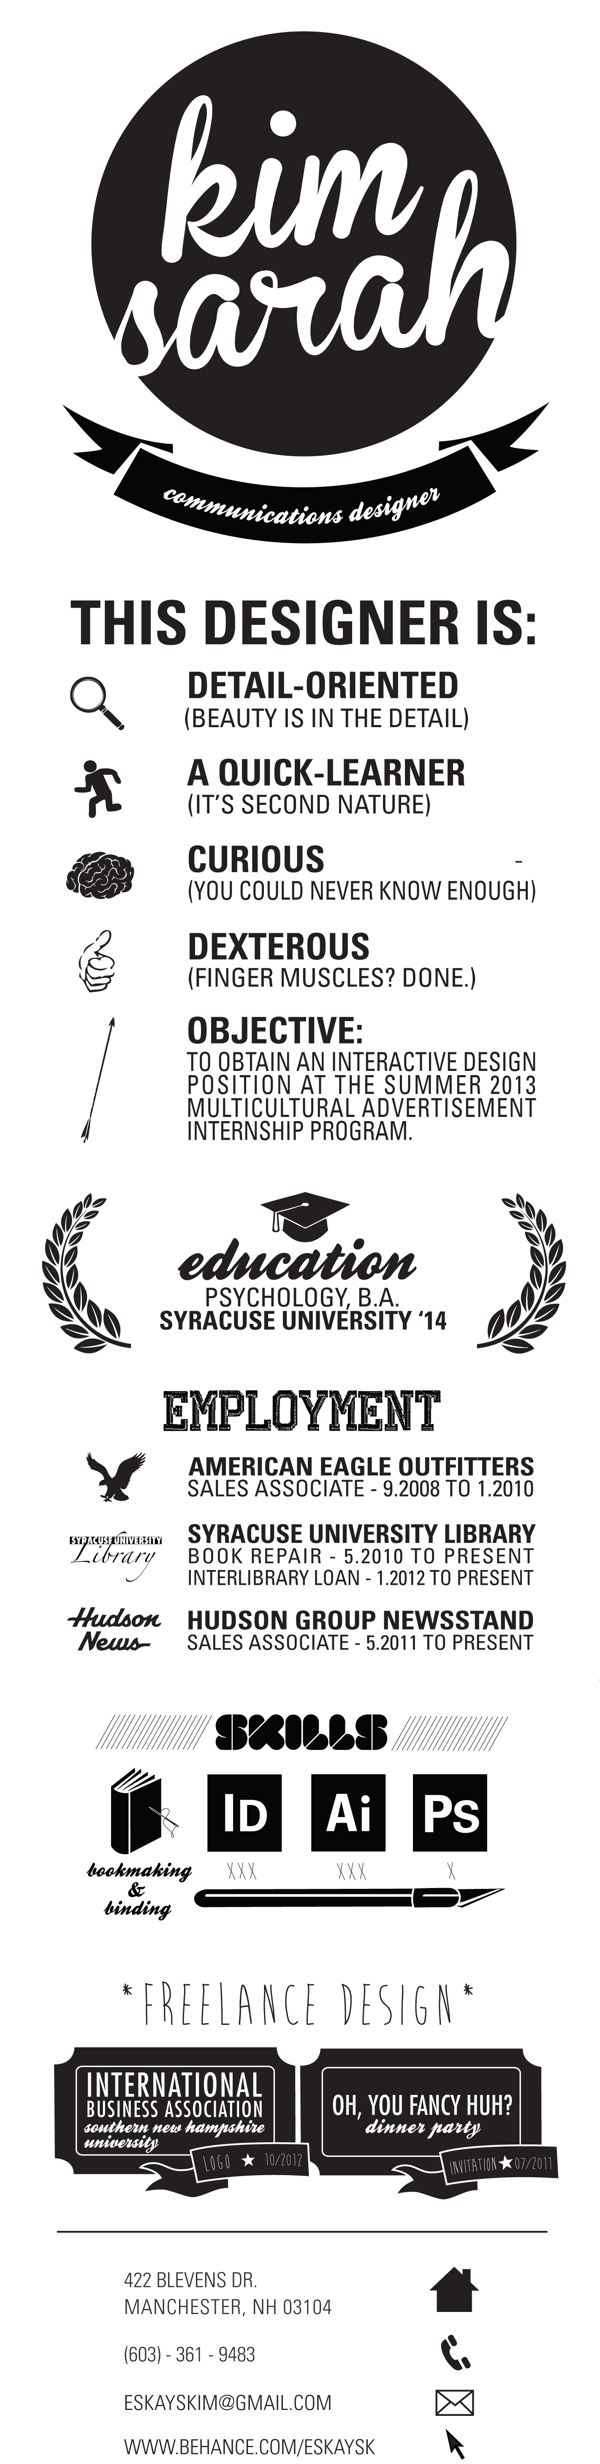 best ideas about graphic designer resume resume i design infographic resumes check out my portfolio by clicking on the pic